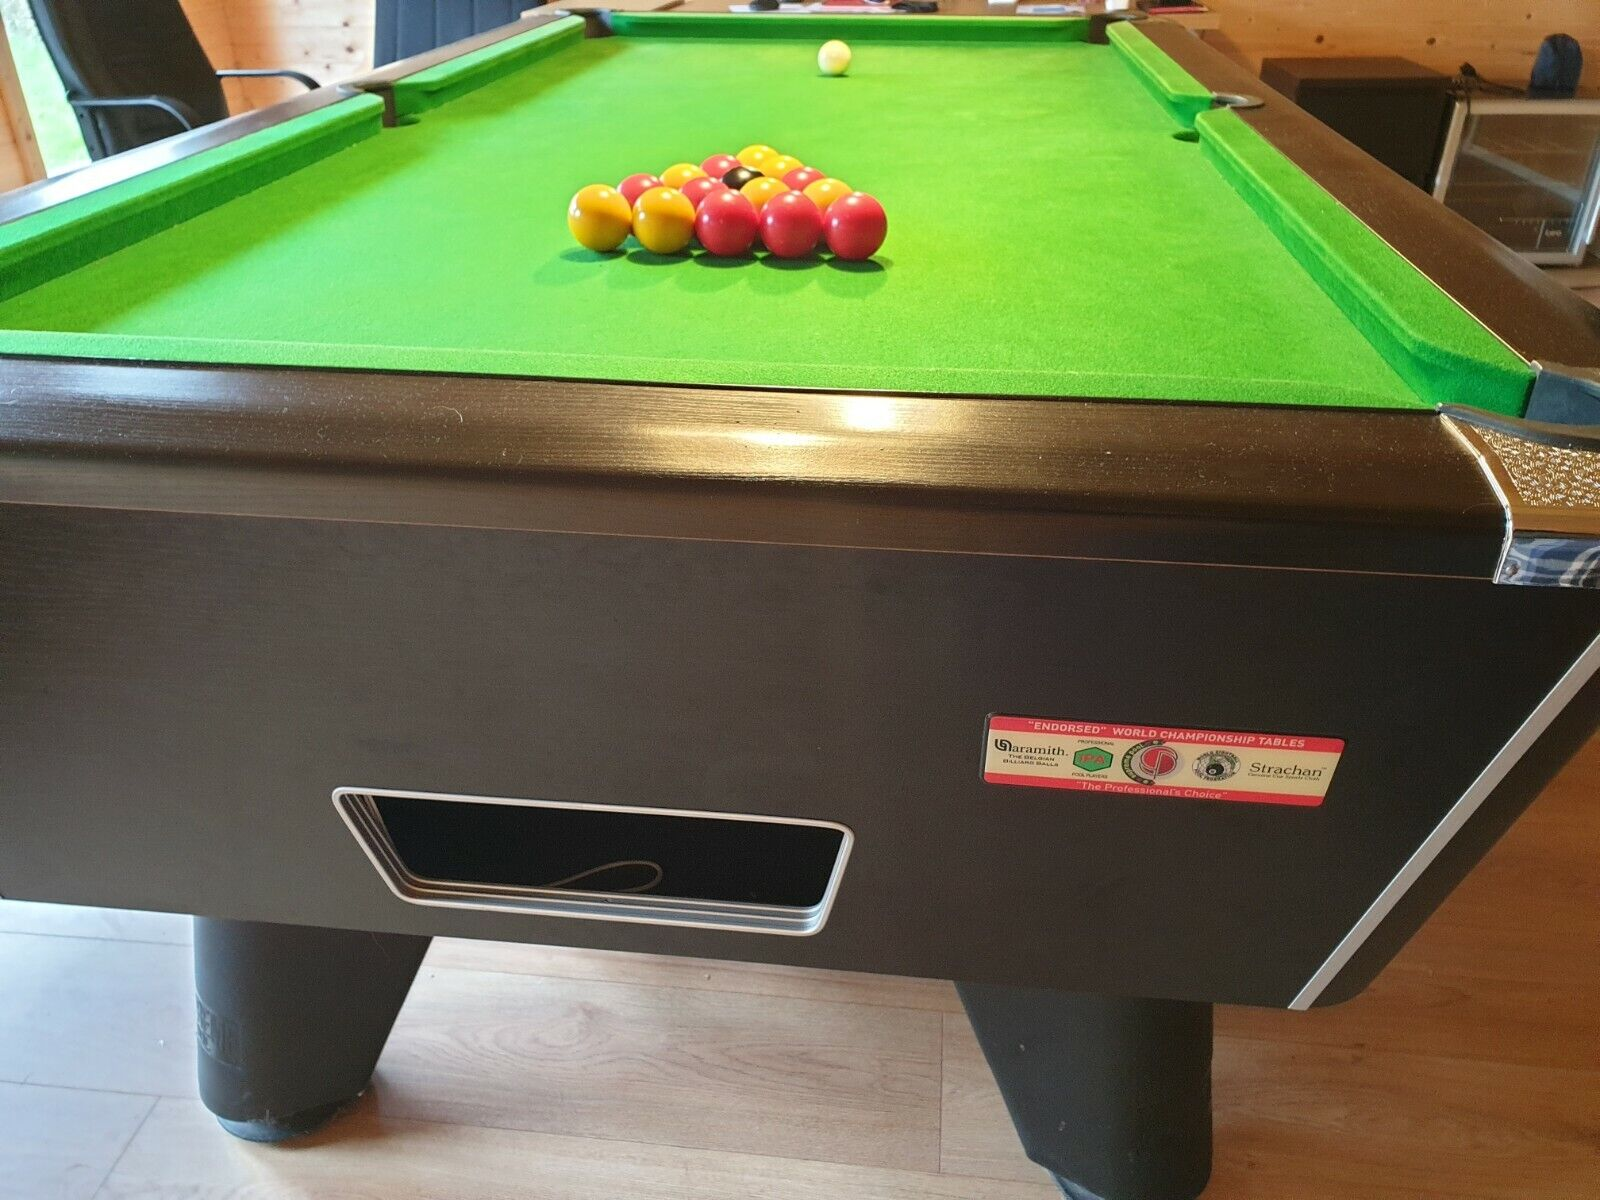 7ft supreme slate bed pool table with hydraulic table trolley, cues, spare balls